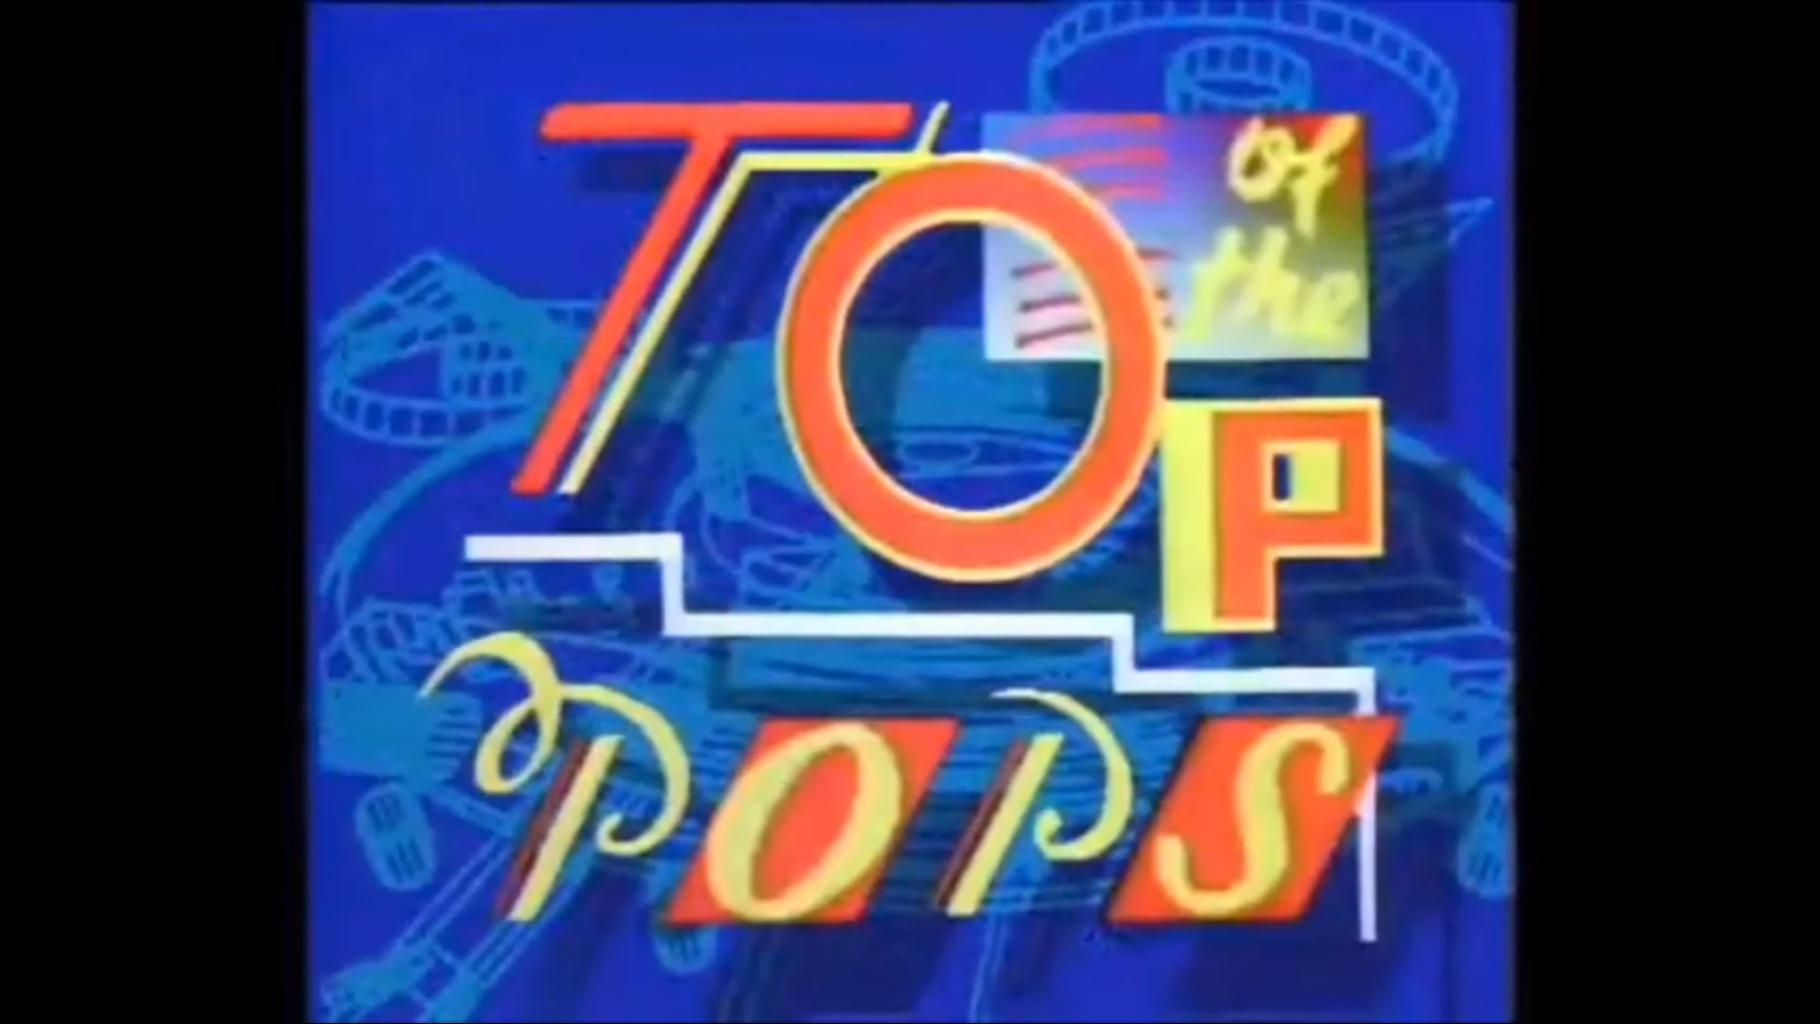 Top Of The Pops (TOTP) 1987 title card